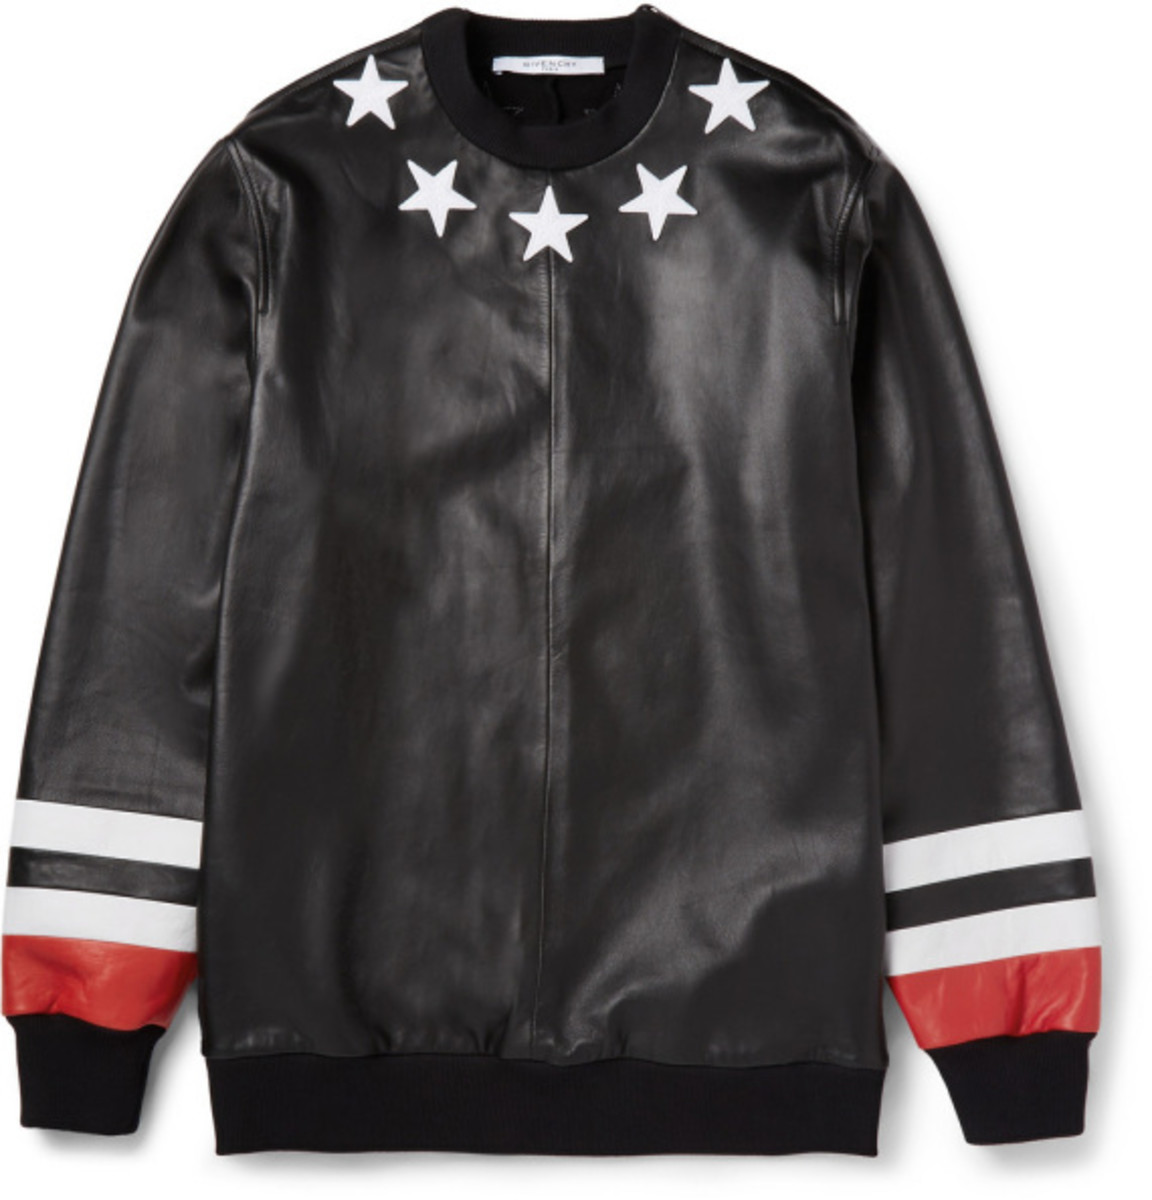 GIVENCHY - Star Detail Leather Sweatshirt with Jersey Back - 1